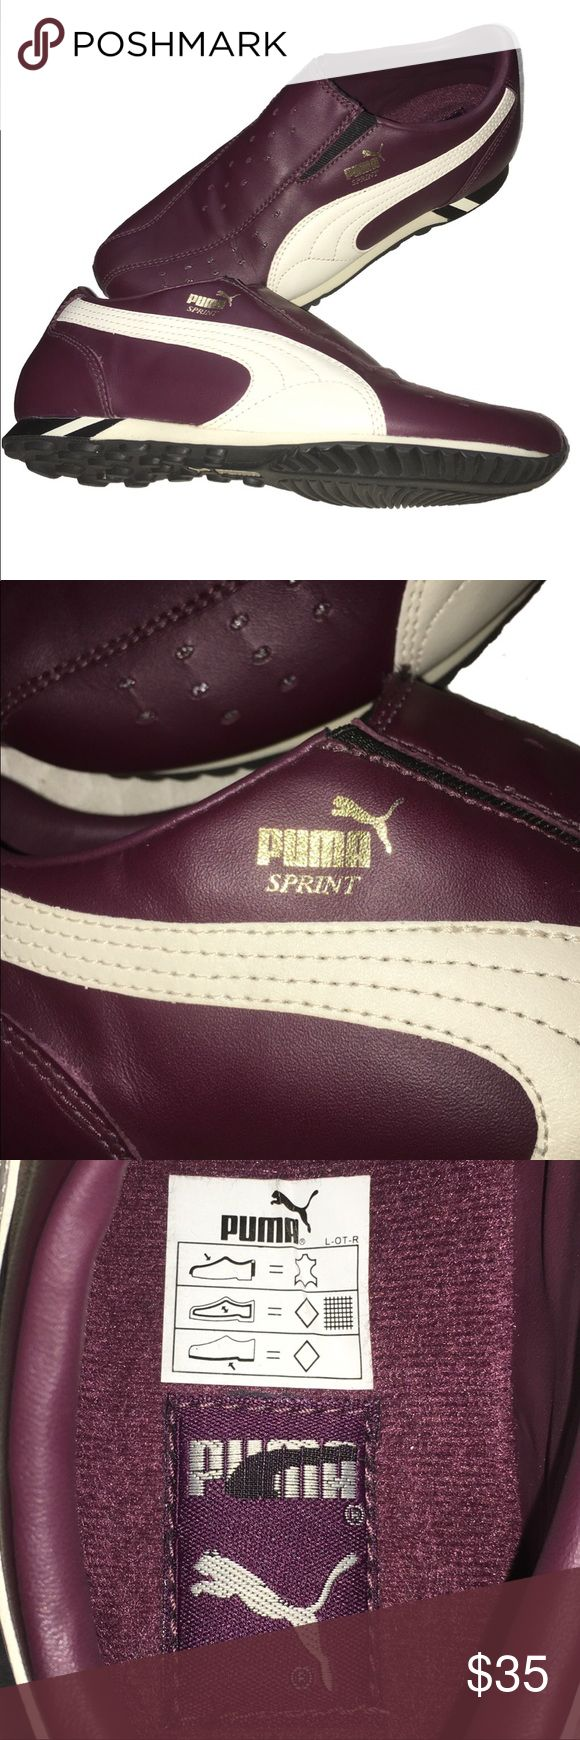 "Women's Puma ""Sprint"" Shoes This is a great pair of women's PUMA ""Sprint"" shoes. These shoes are new and haven't ever been worn. Although they don't come with any original packaging or tags Size: 7.5  NEW without box or tags. Color: Burgandy Puma Shoes Athletic Shoes"